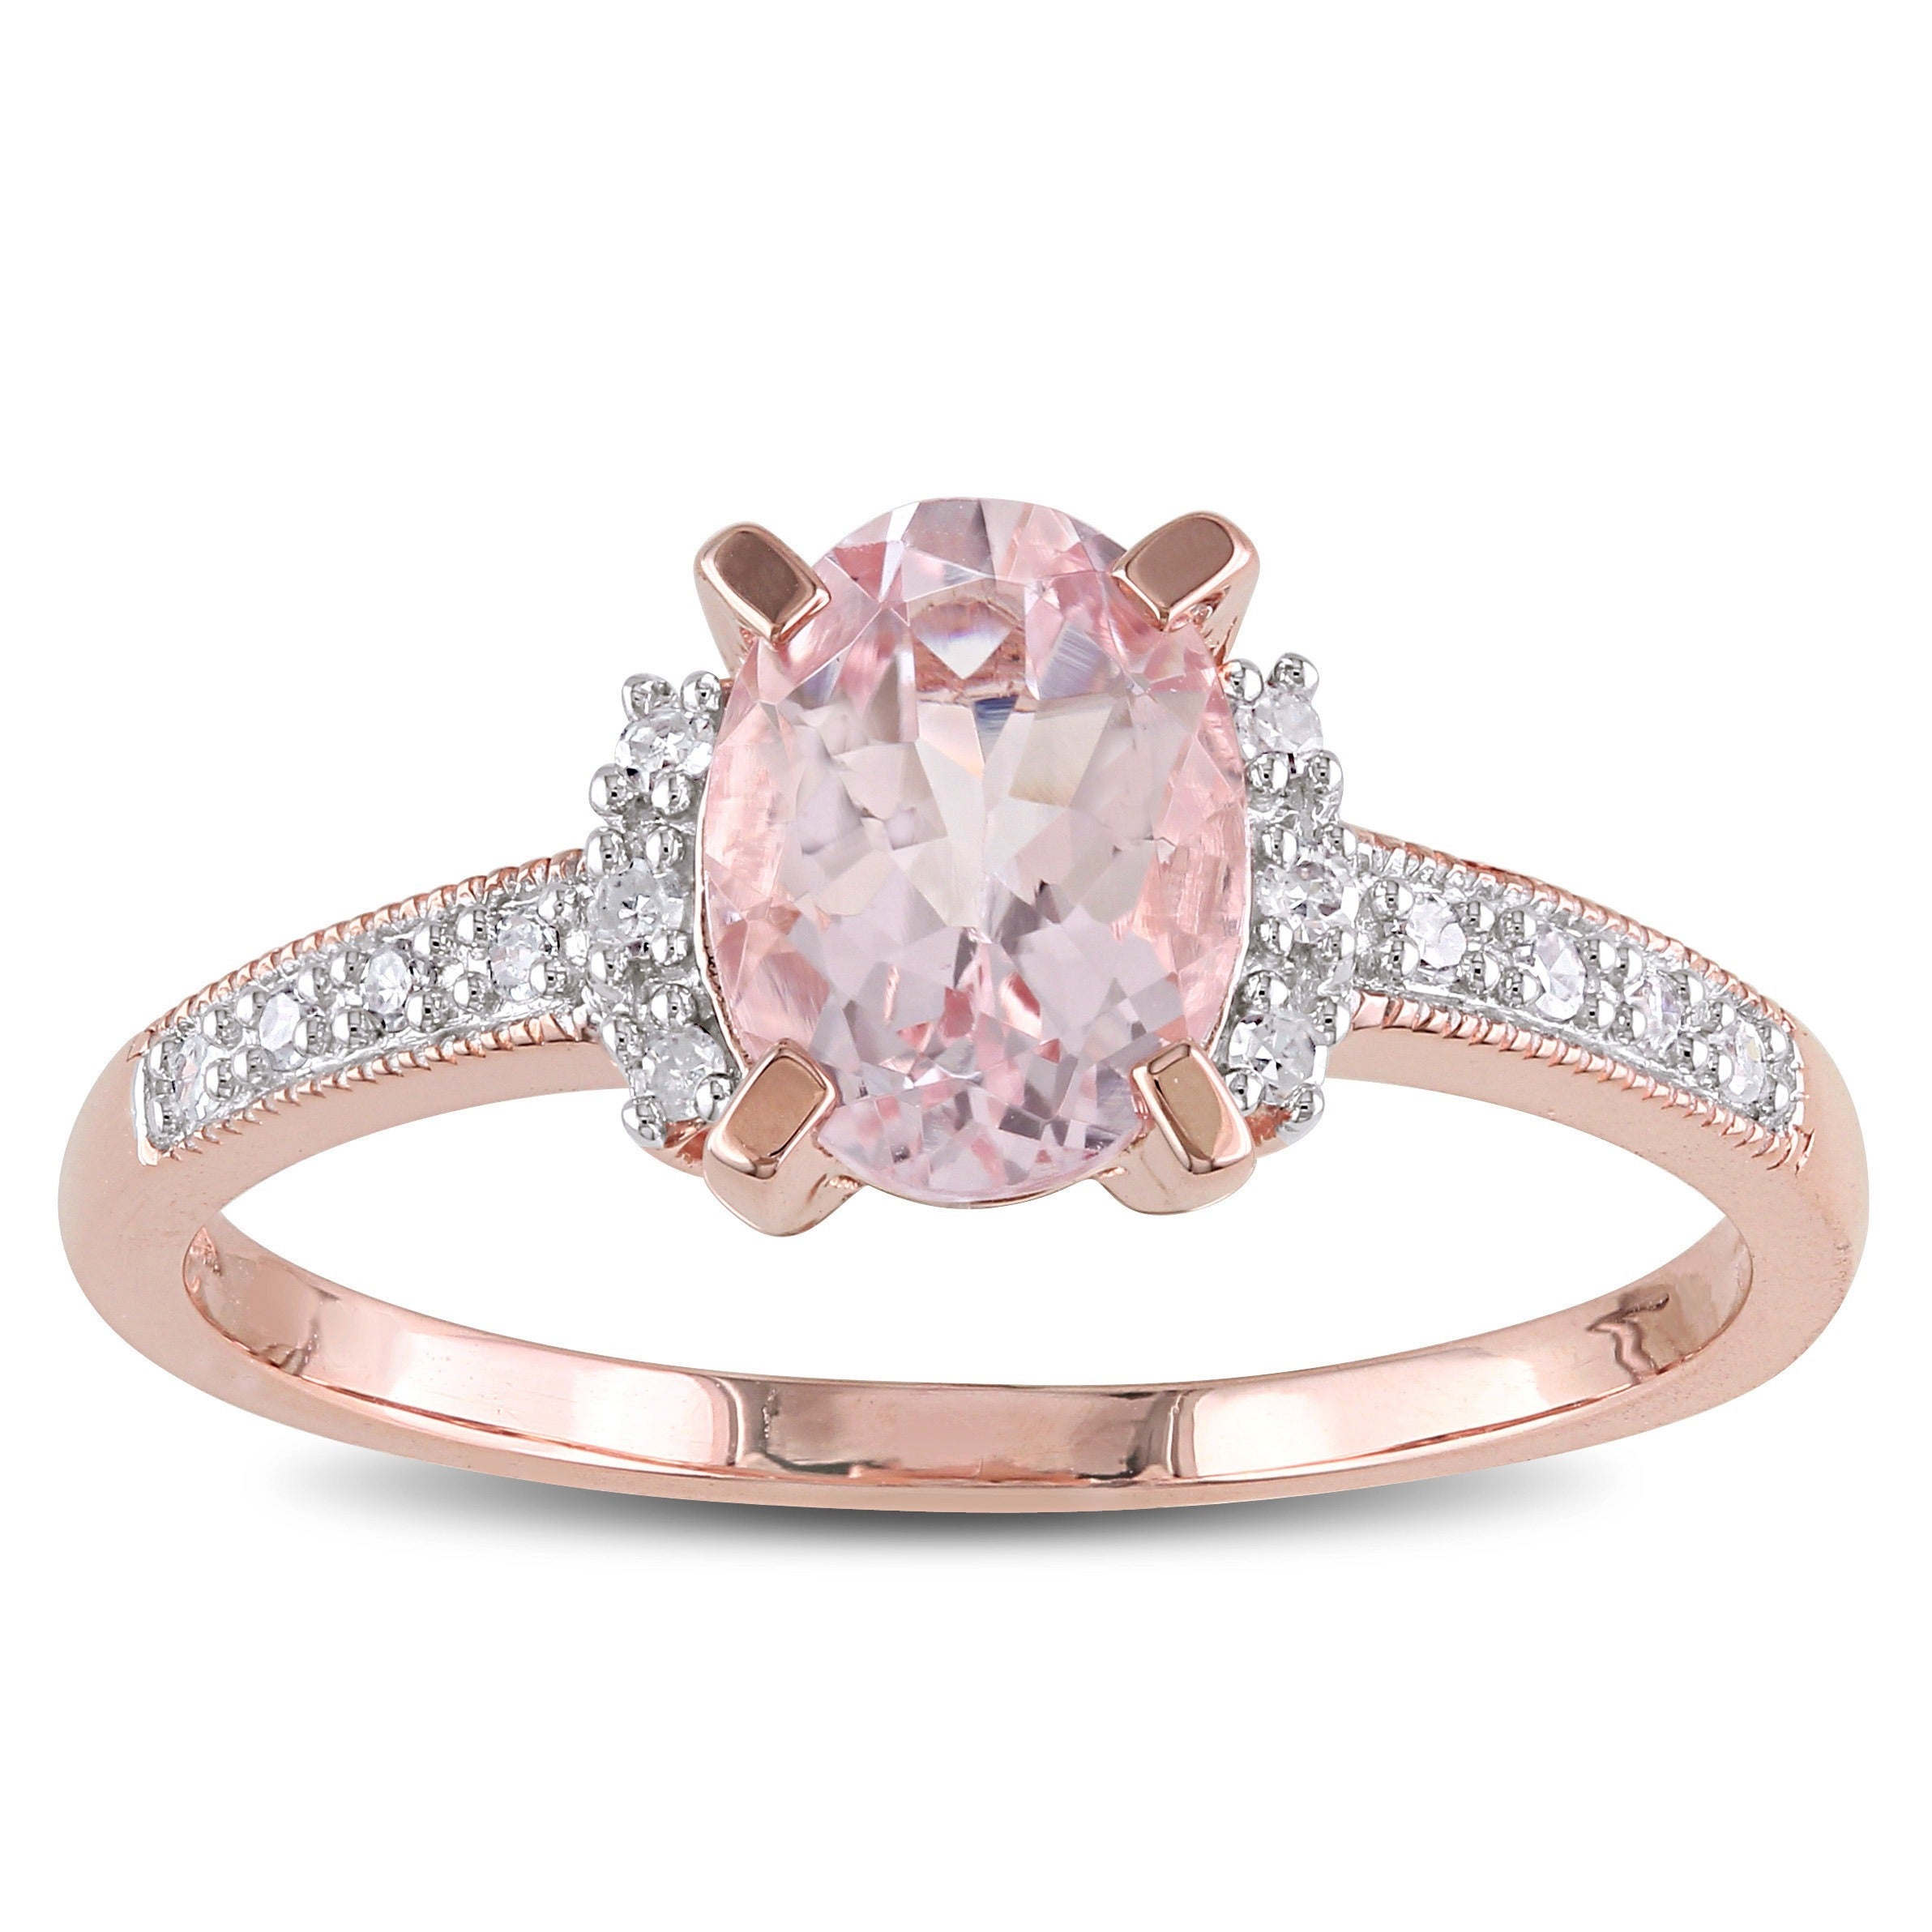 wedding clarity ppsap h products g rose sapphire champagne pink engagement color eternity rings gold ring diamond white stone ct